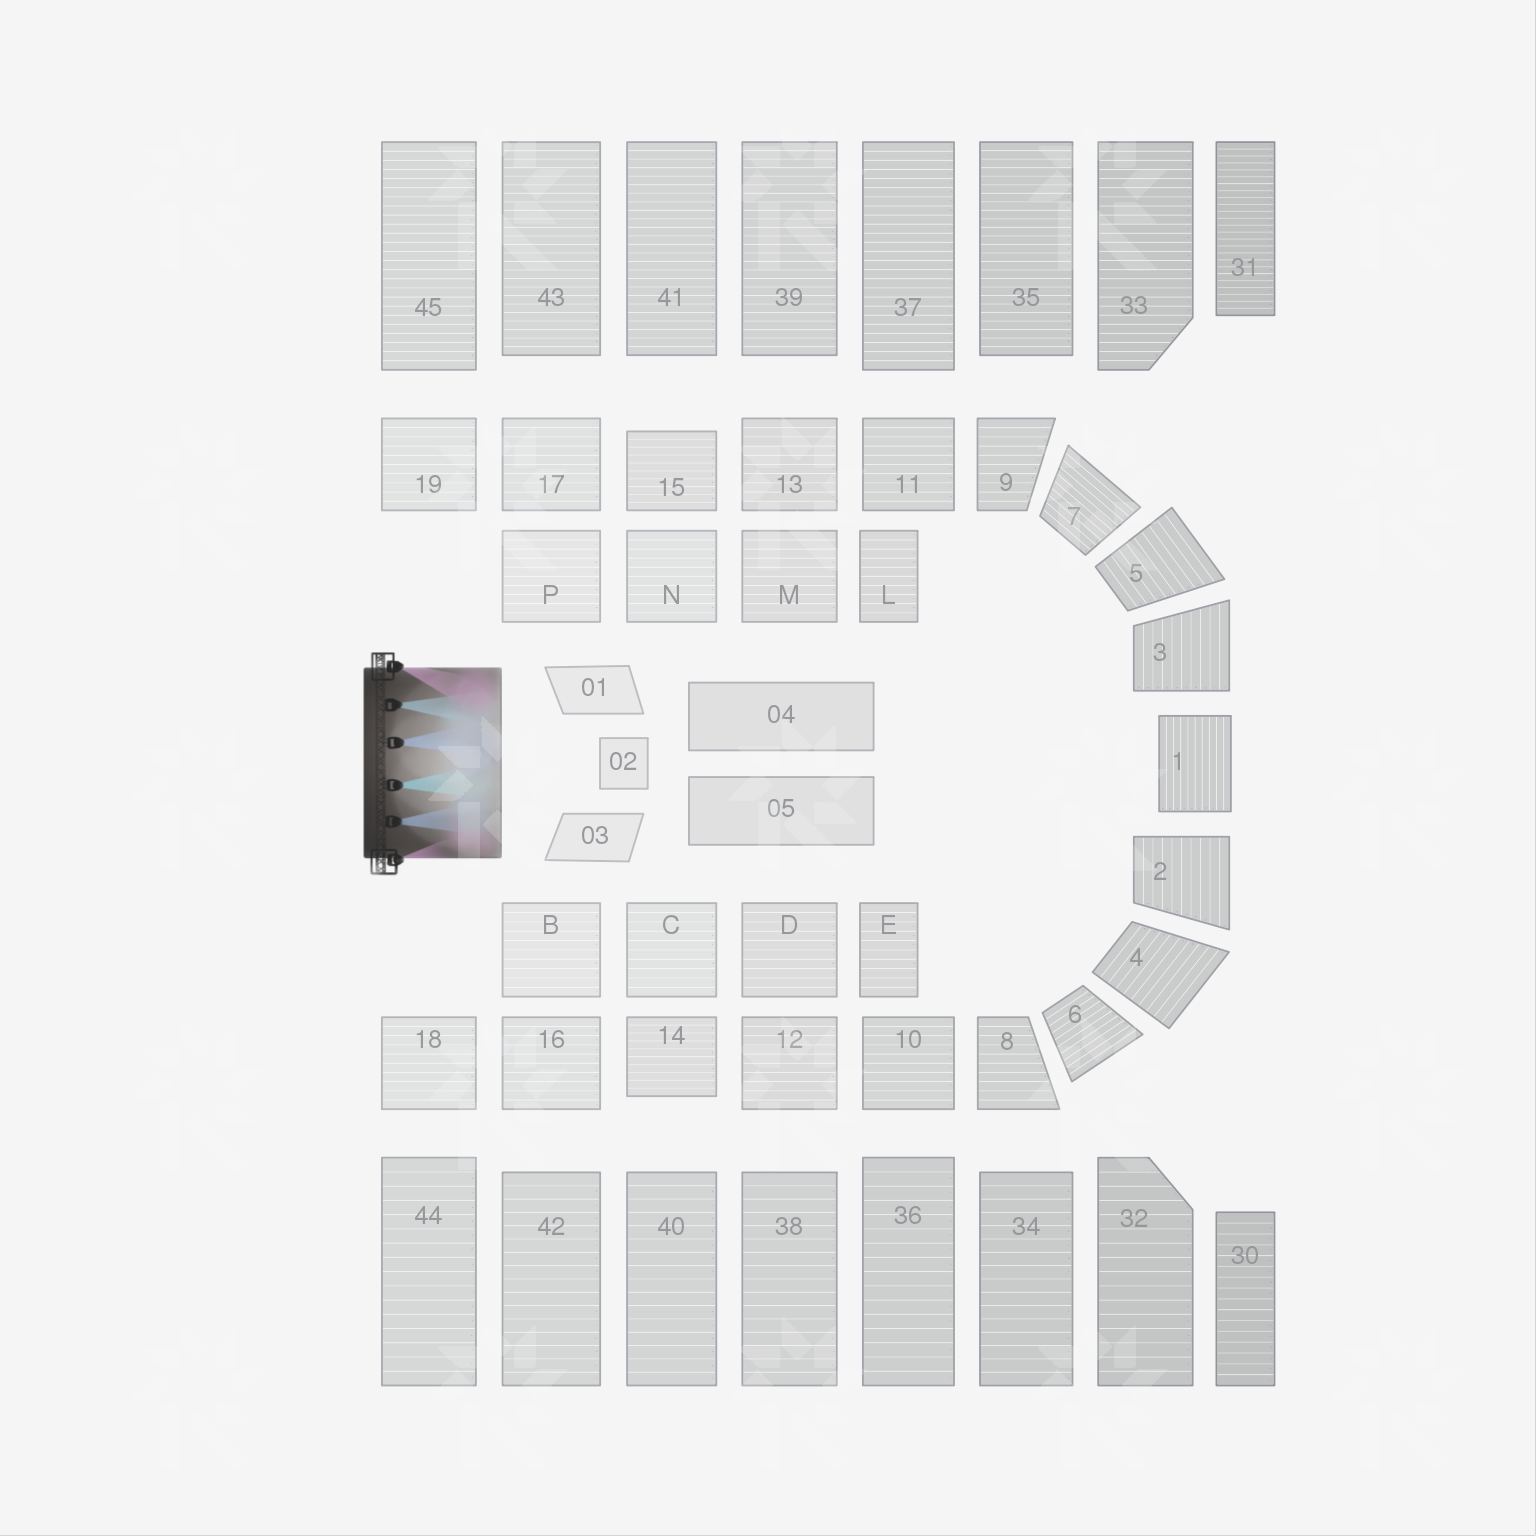 MetraPark Rimrock Auto Arena Seating Chart Concerts Carrie Underwood Concerts